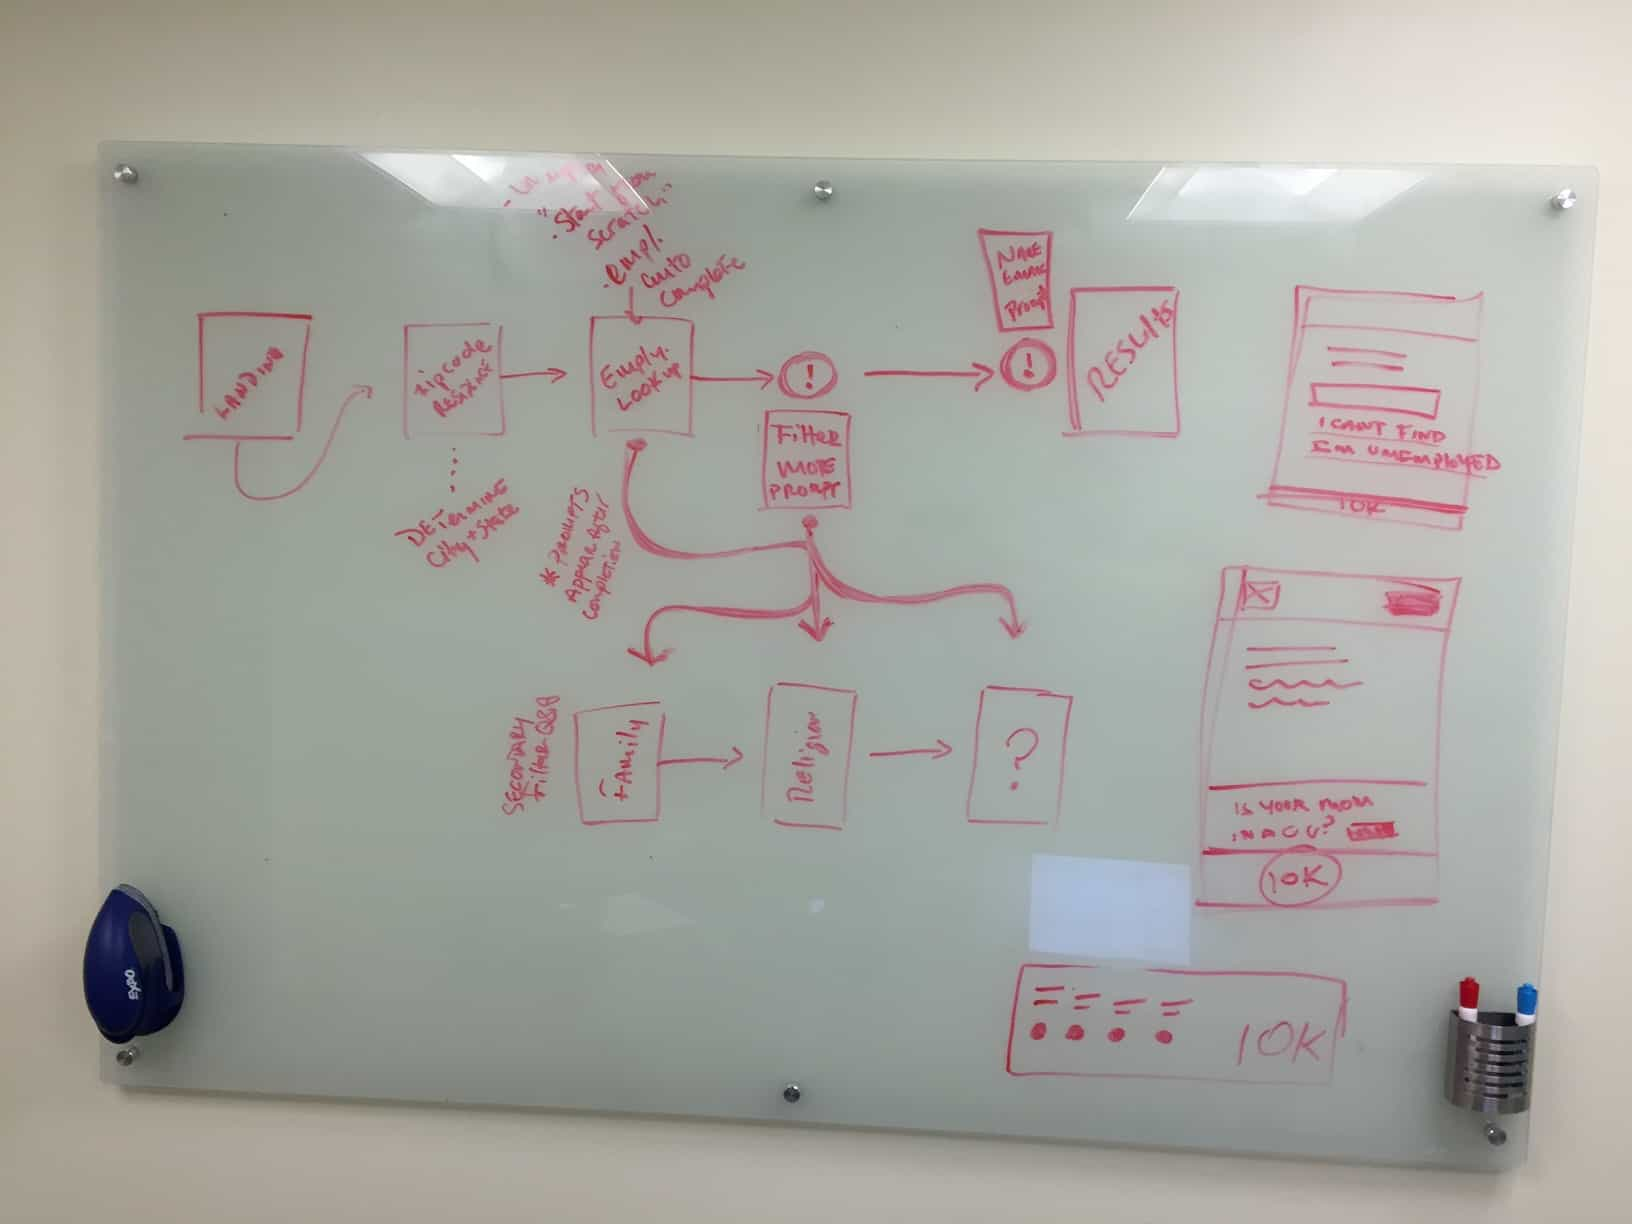 // Whiteboarding session of user flow (1 of 2)